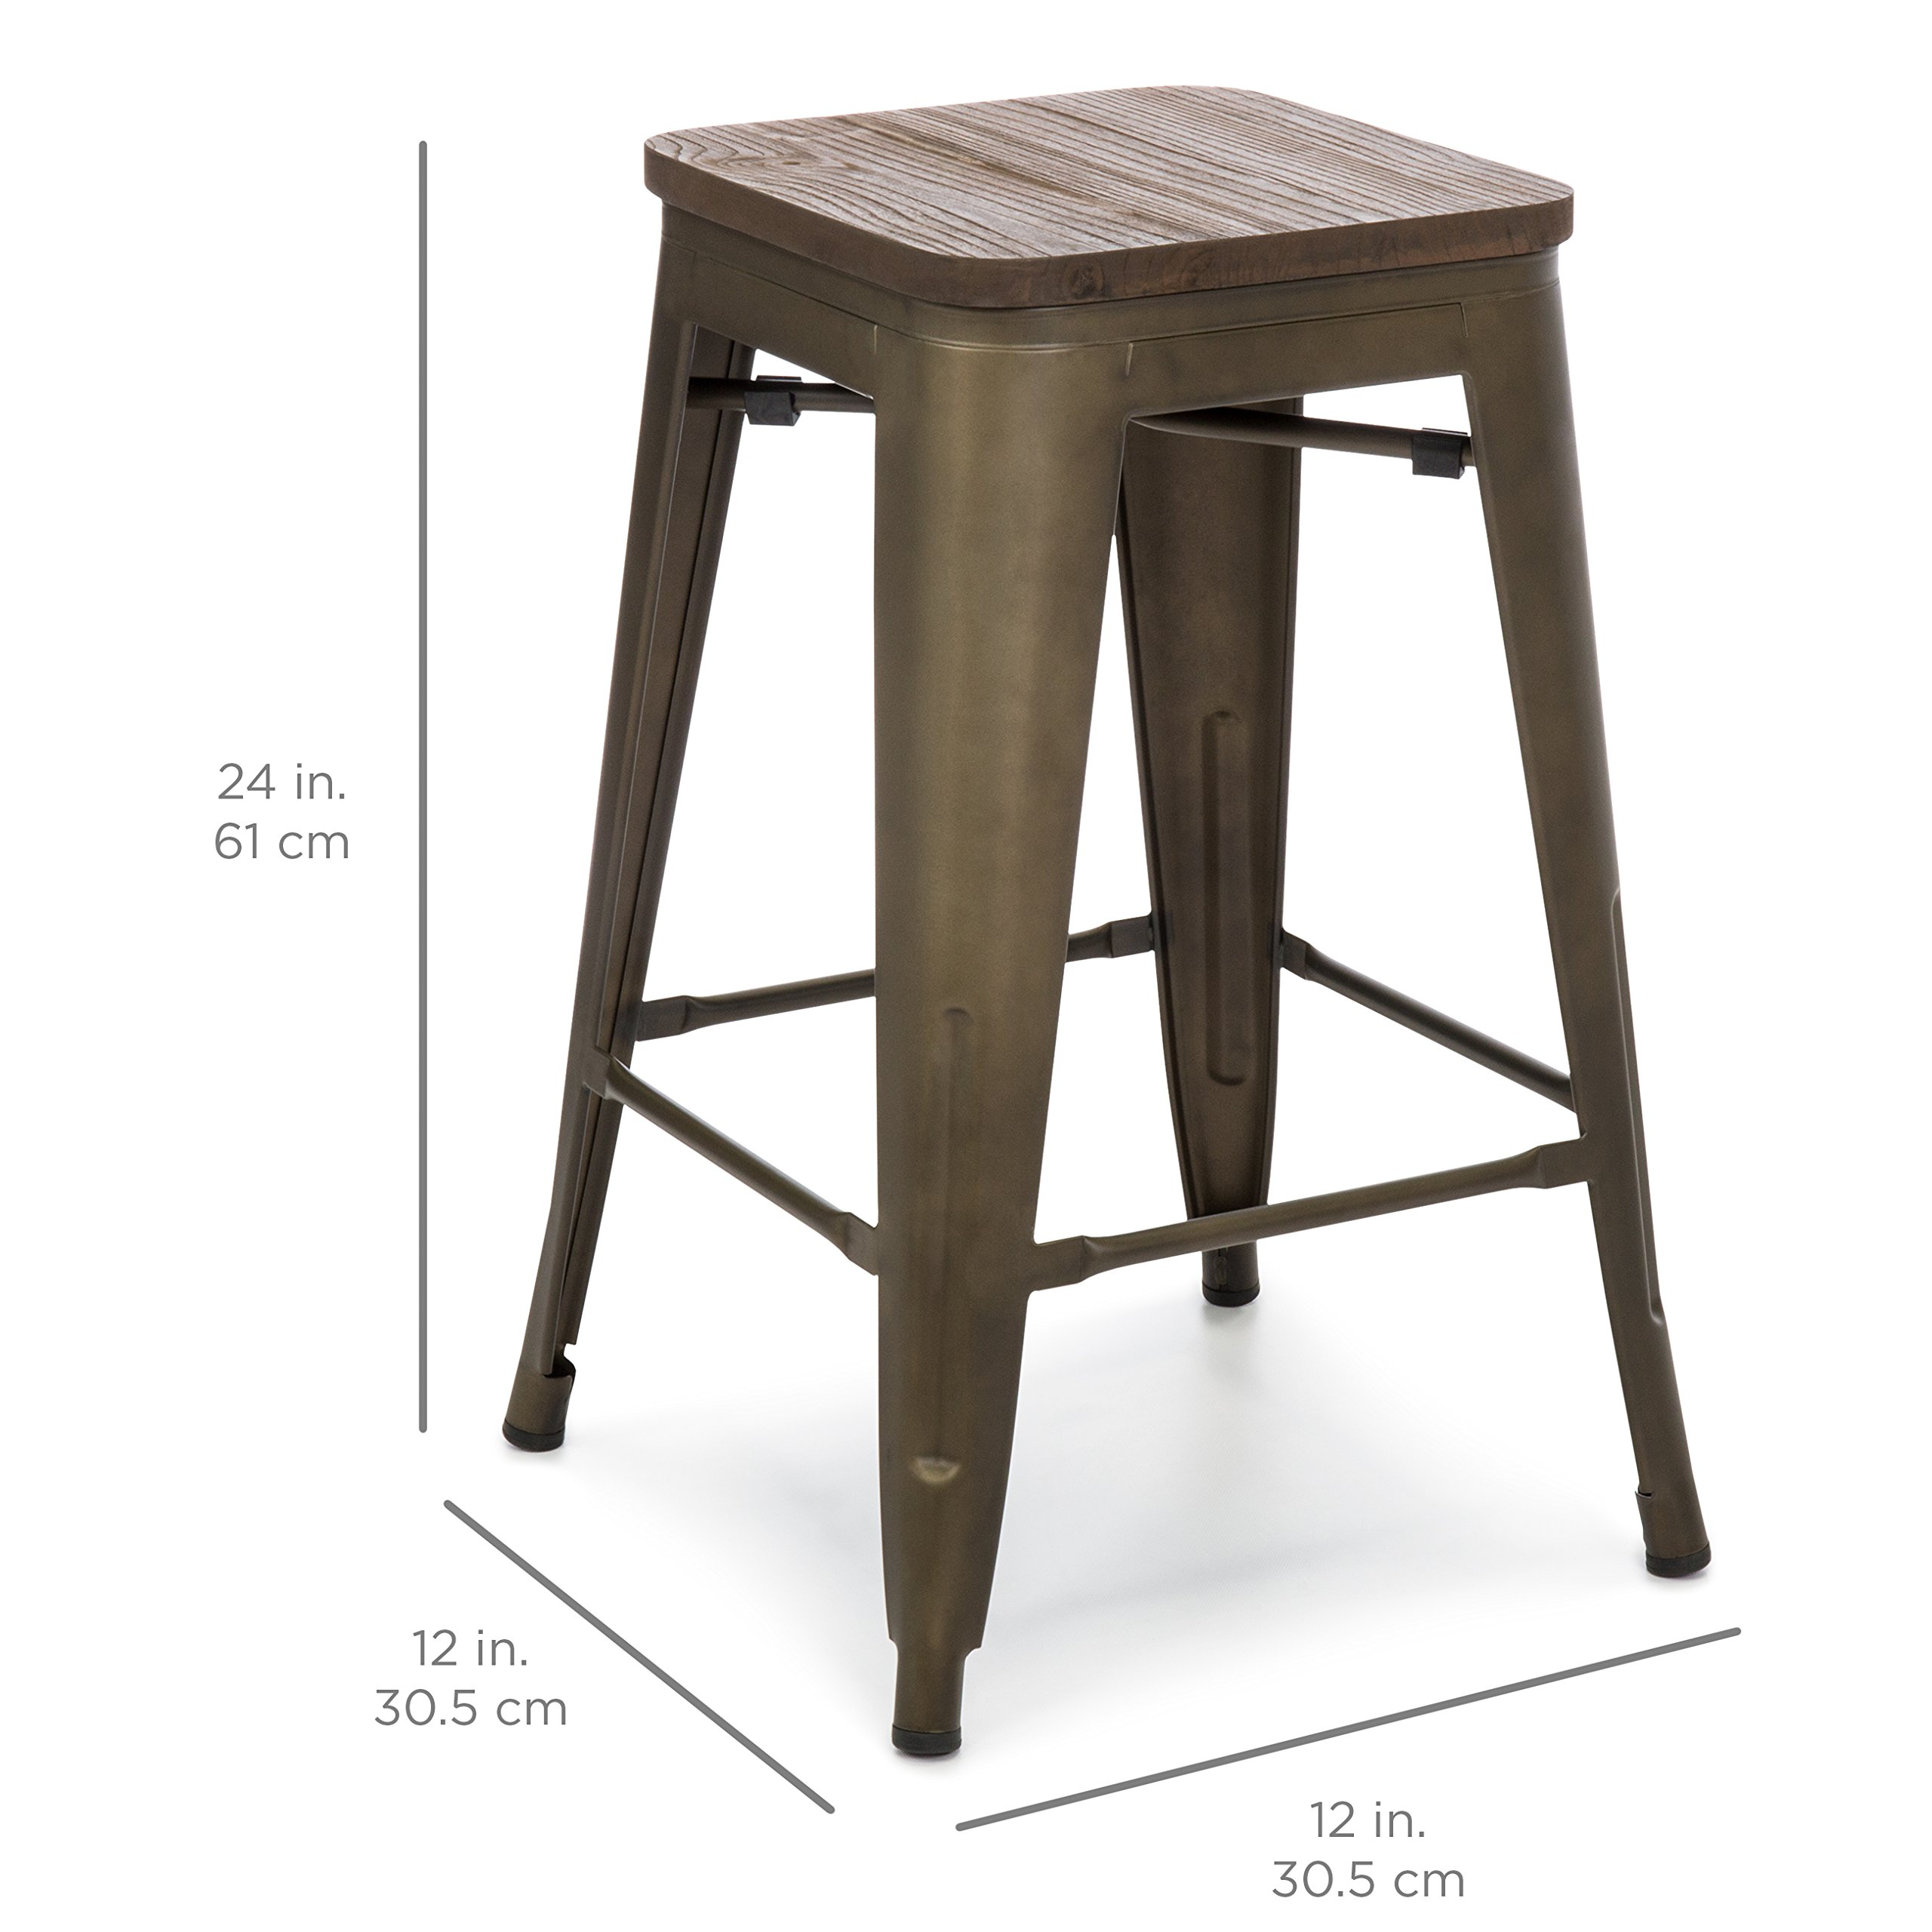 Best Choice Products 24in Set of 4 Stackable Industrial Distressed Metal Counter Height Bar Stools w/Wood Seat - Copper by Best Choice Products (Image #5)